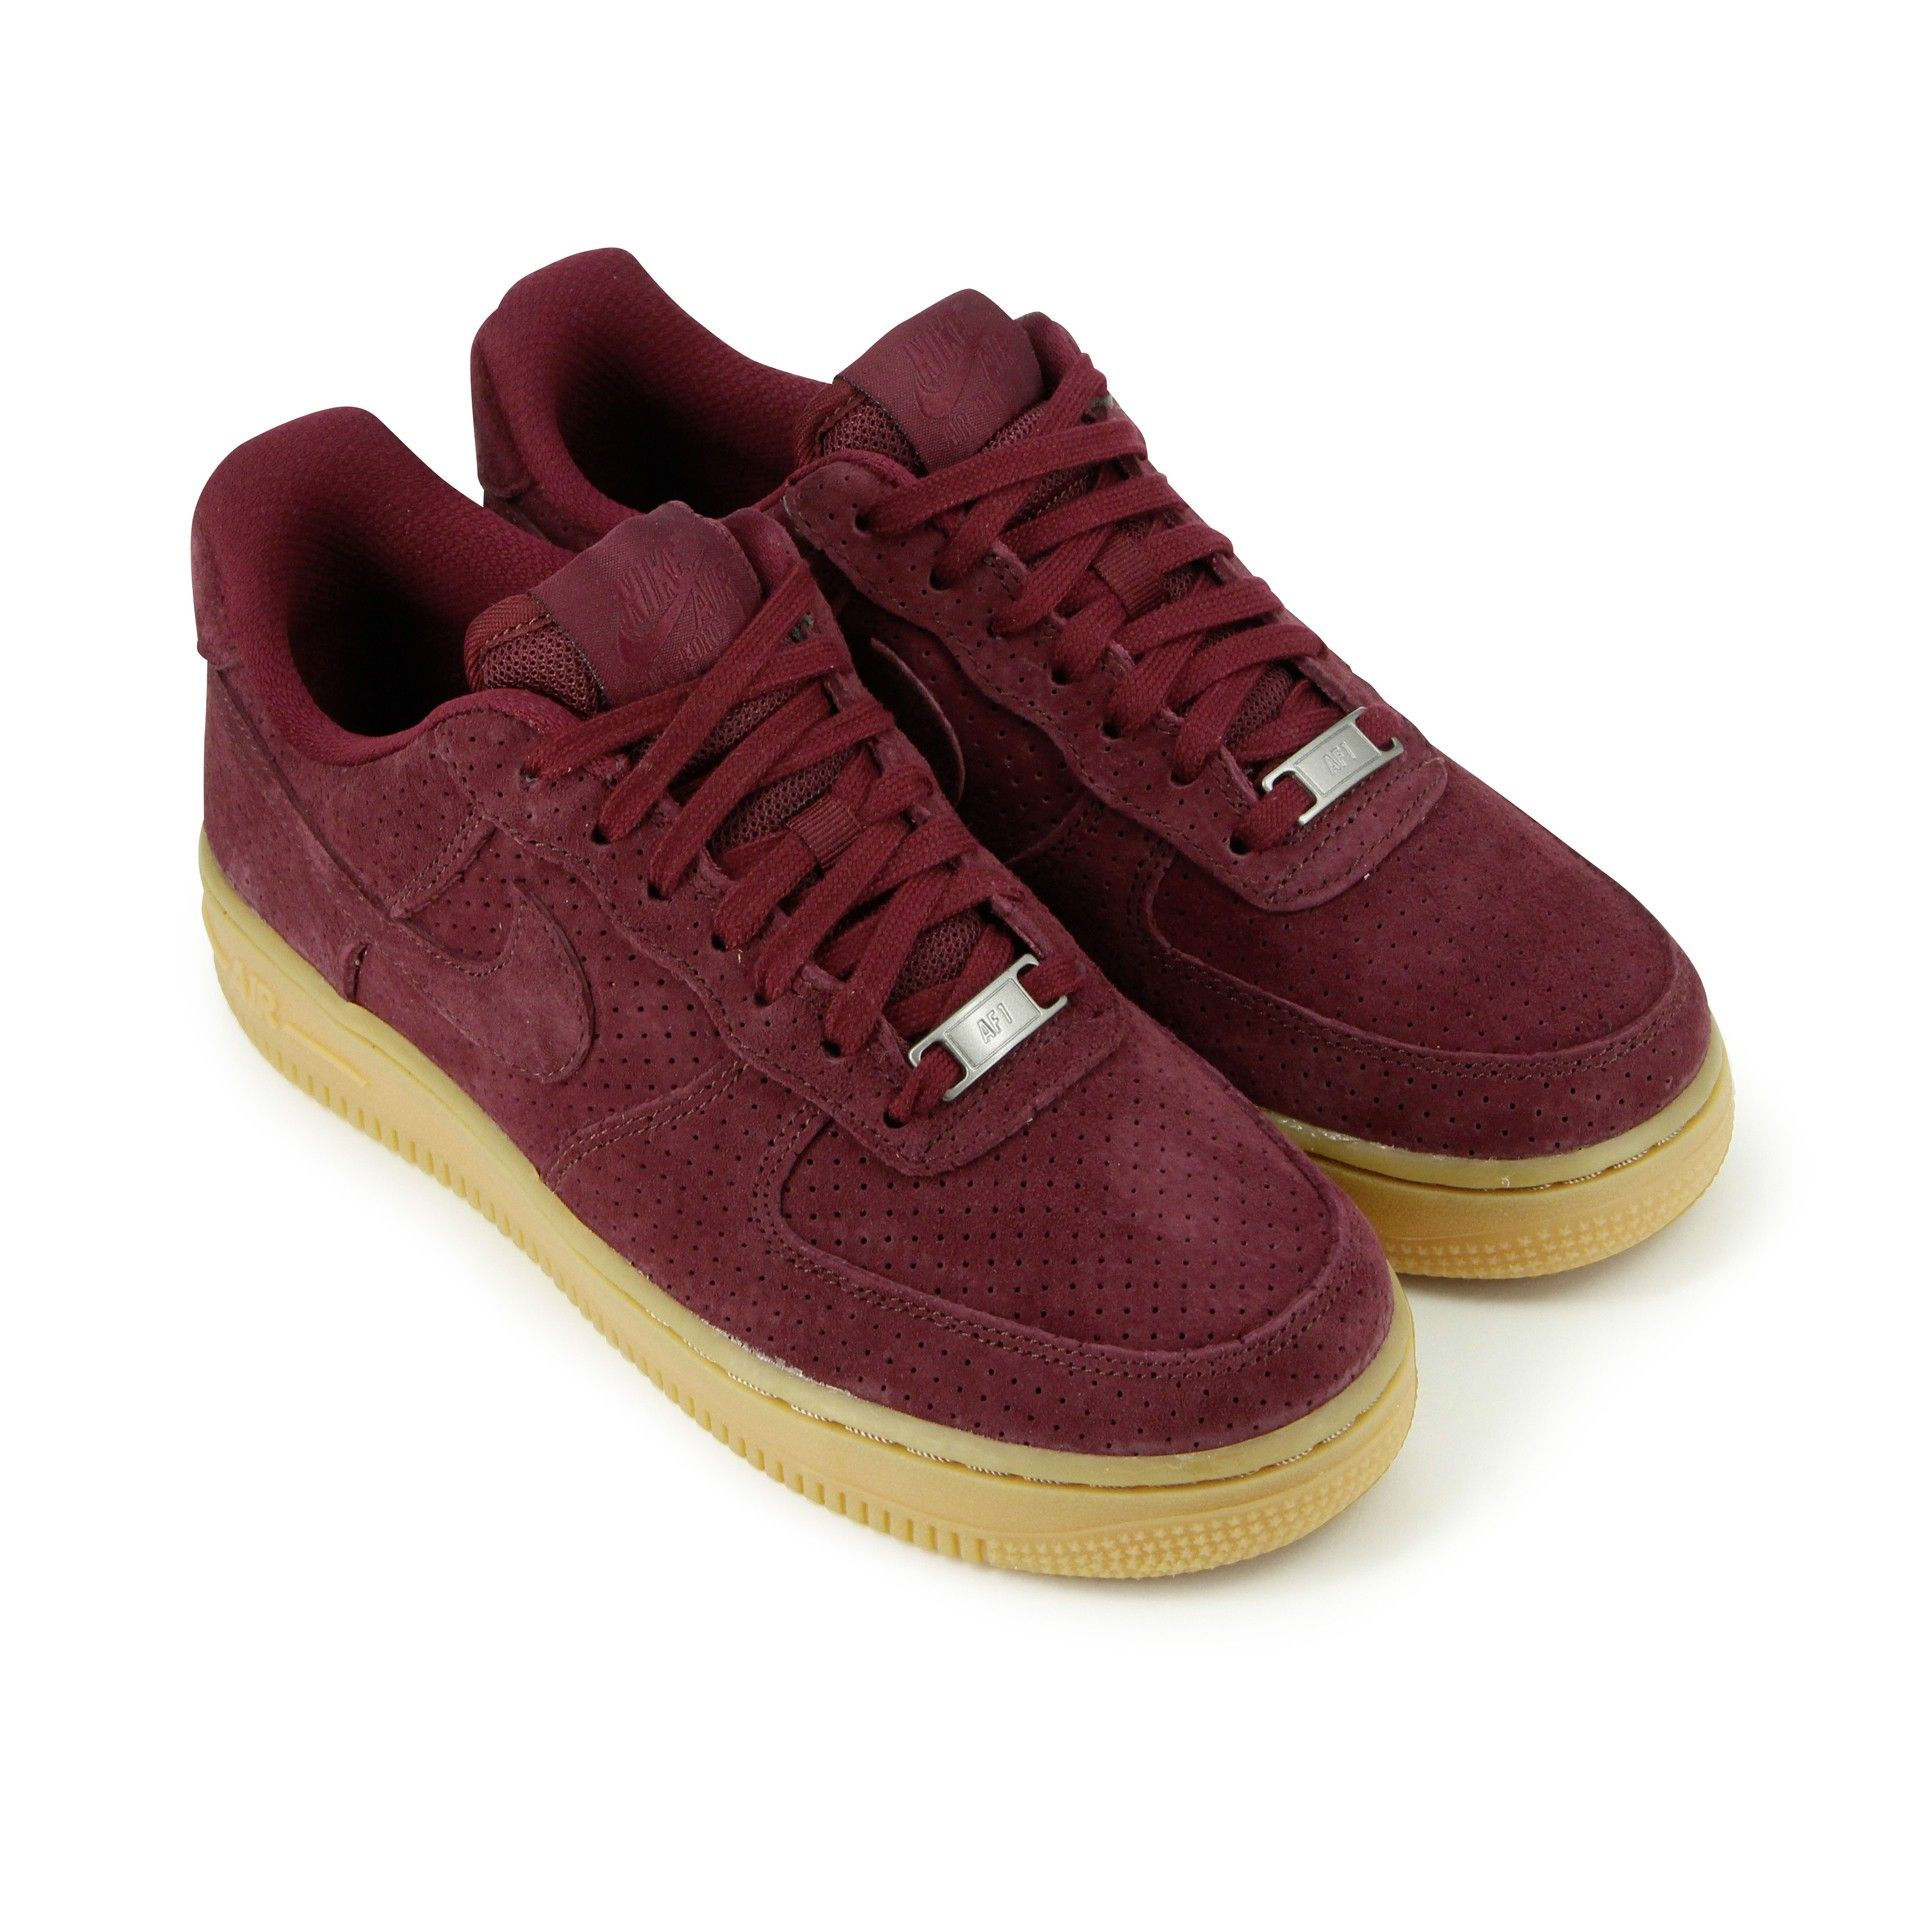 nike air force 1 femme rouge bordeaux